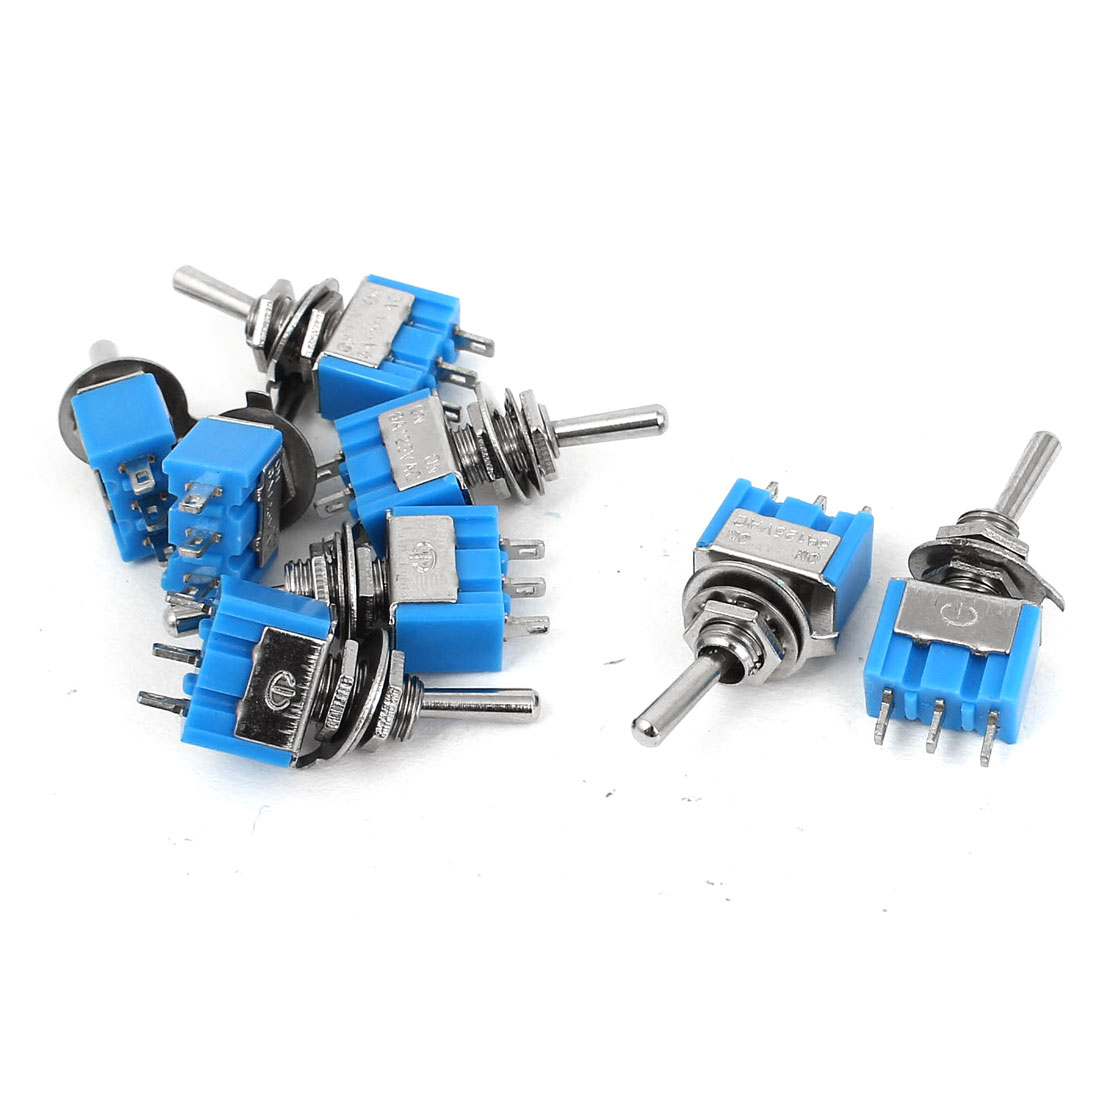 AC 125V 6A SPDT ON-ON 2 Positions 3 Pin Mini Toggle Switch 8 Pcs Blue